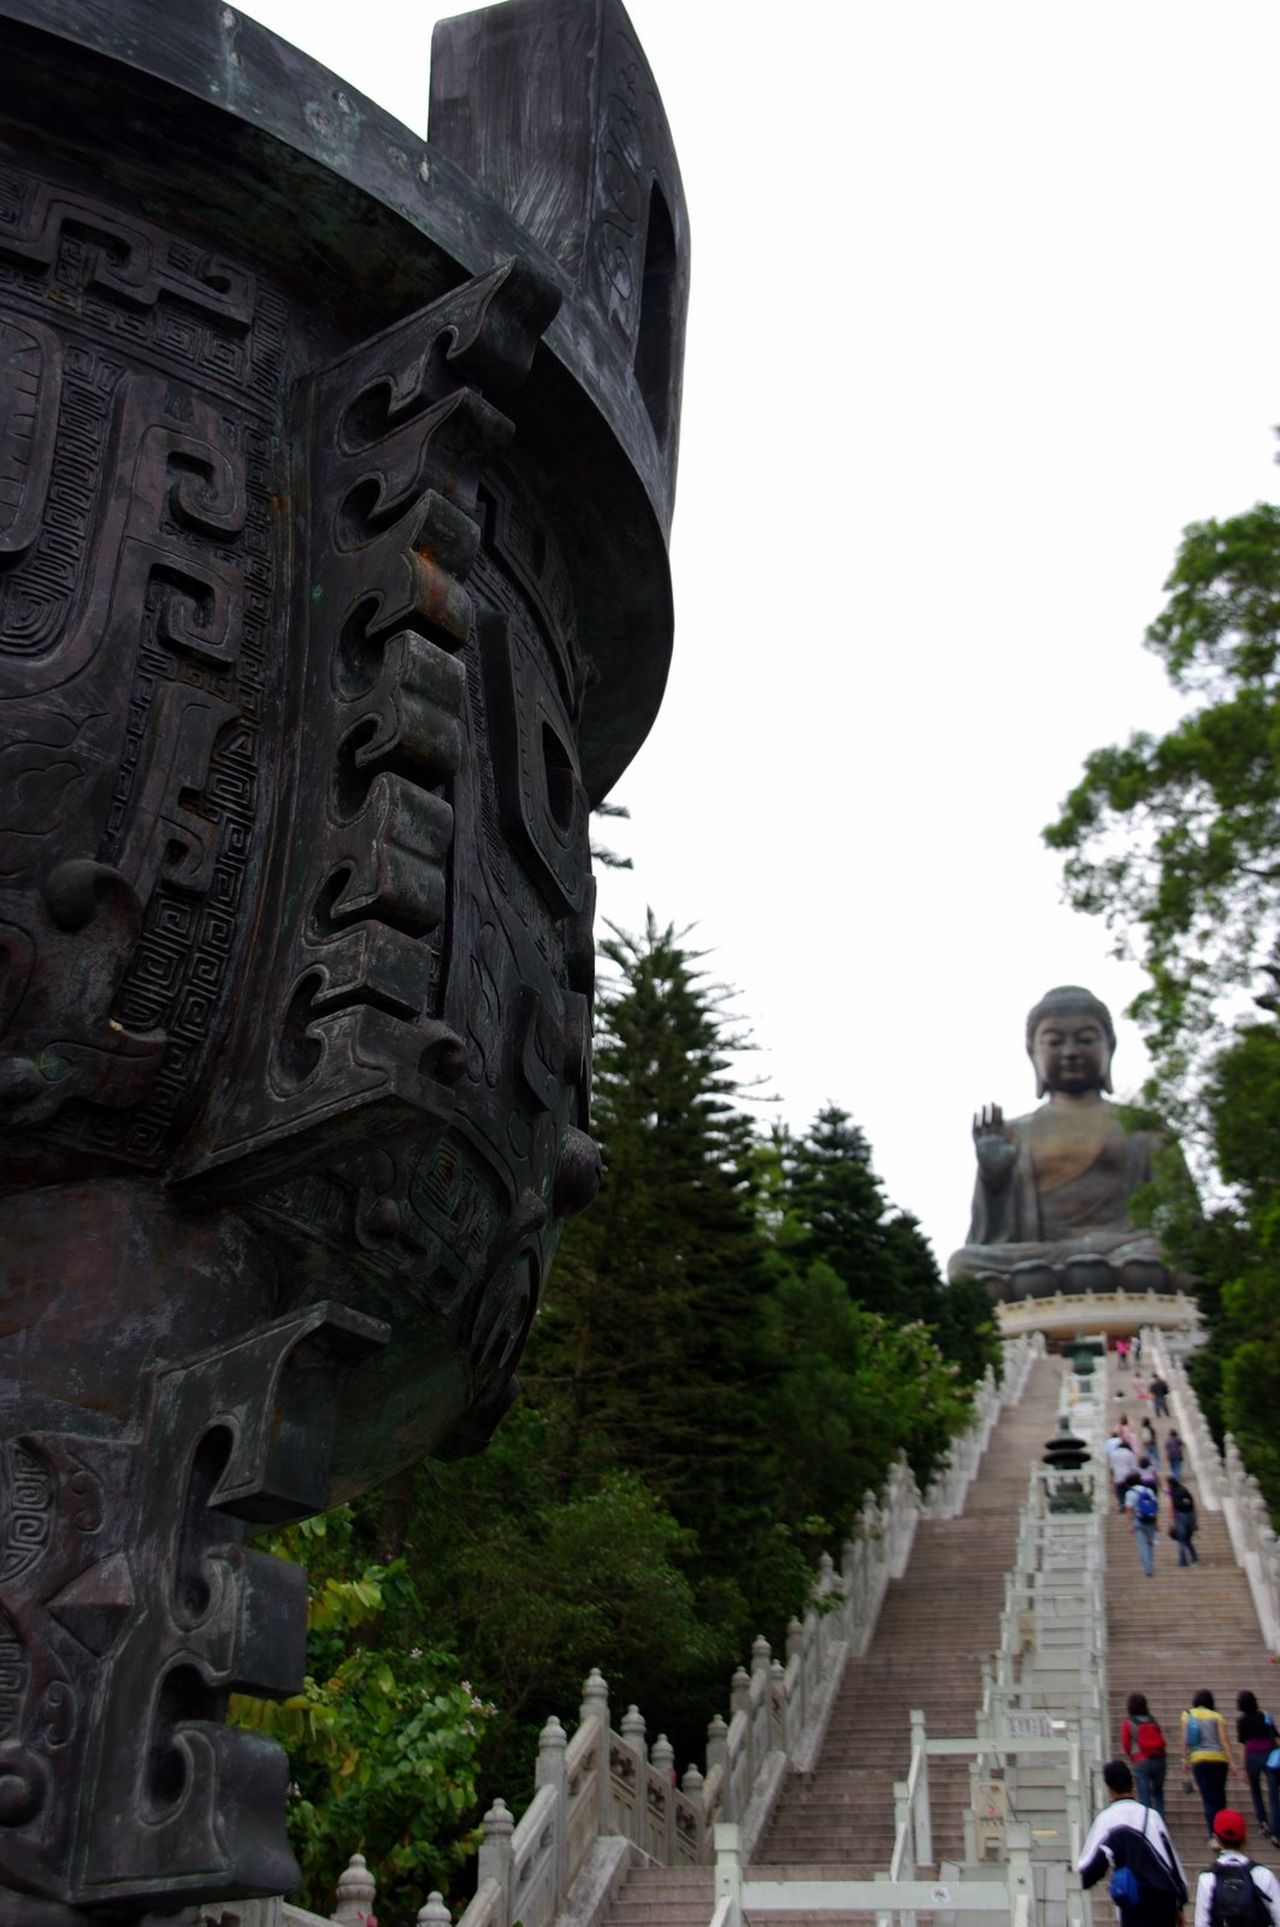 HK memories, 2009 Arch Architecture Building Exterior Clear Sky Day Footpath Monument Outdoors Place Of Worship Sculpture Statue Stone Material Tree Tian Tan Buddha (Giant Buddha) 天壇大佛 Lantau Island